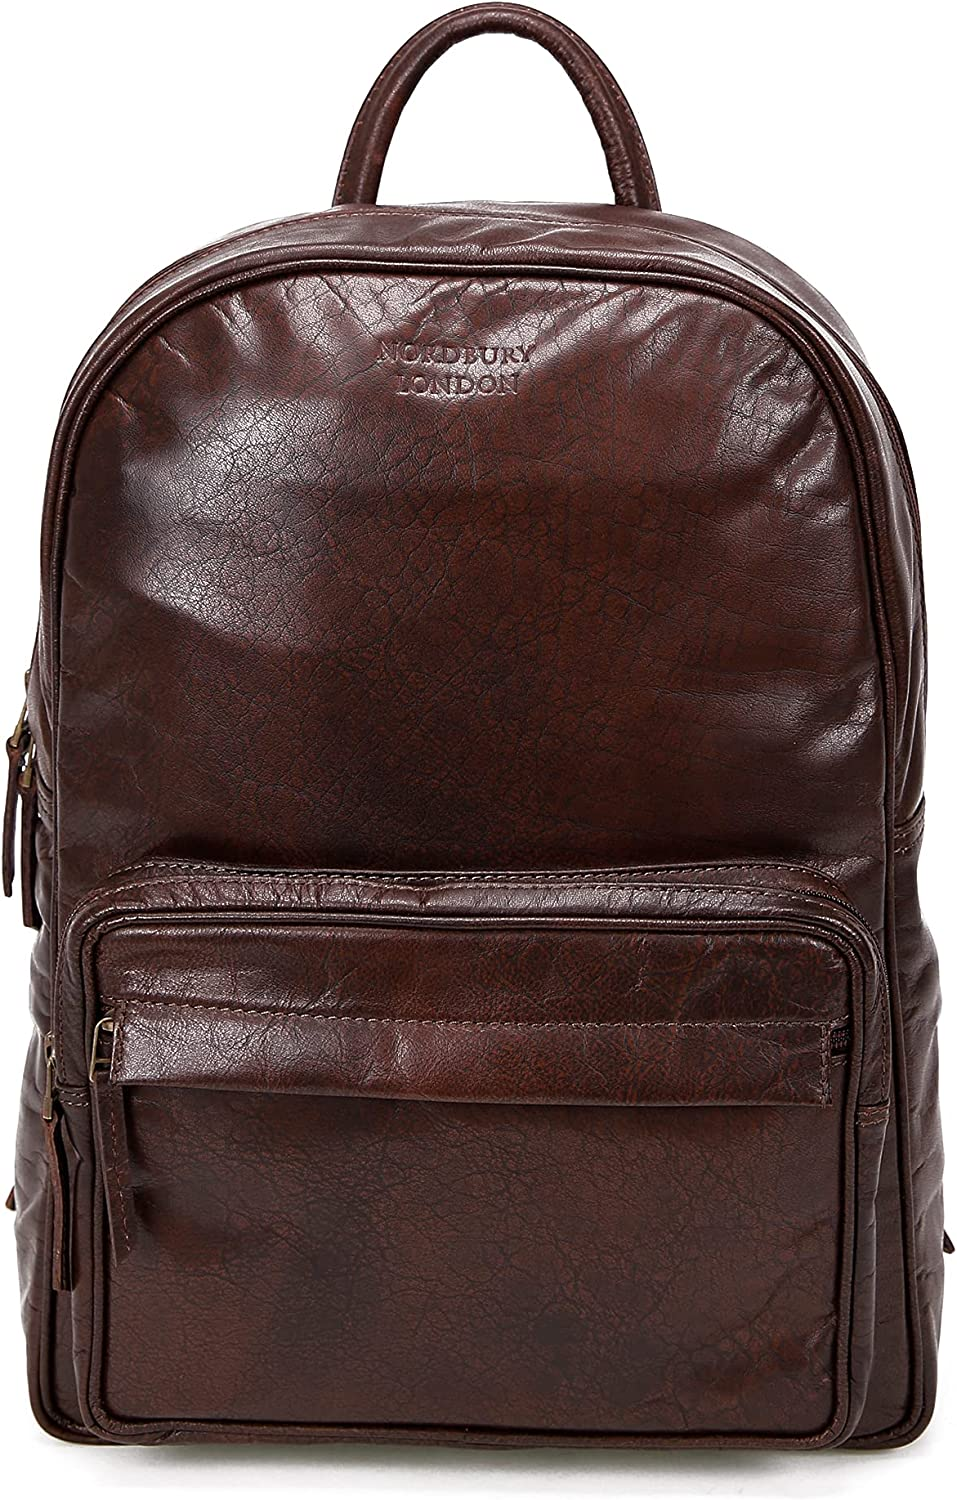 NORDBURY Hand-Crafted NEW before selling ☆ Genuine Leather Fash price Rucksack Backpack Bag